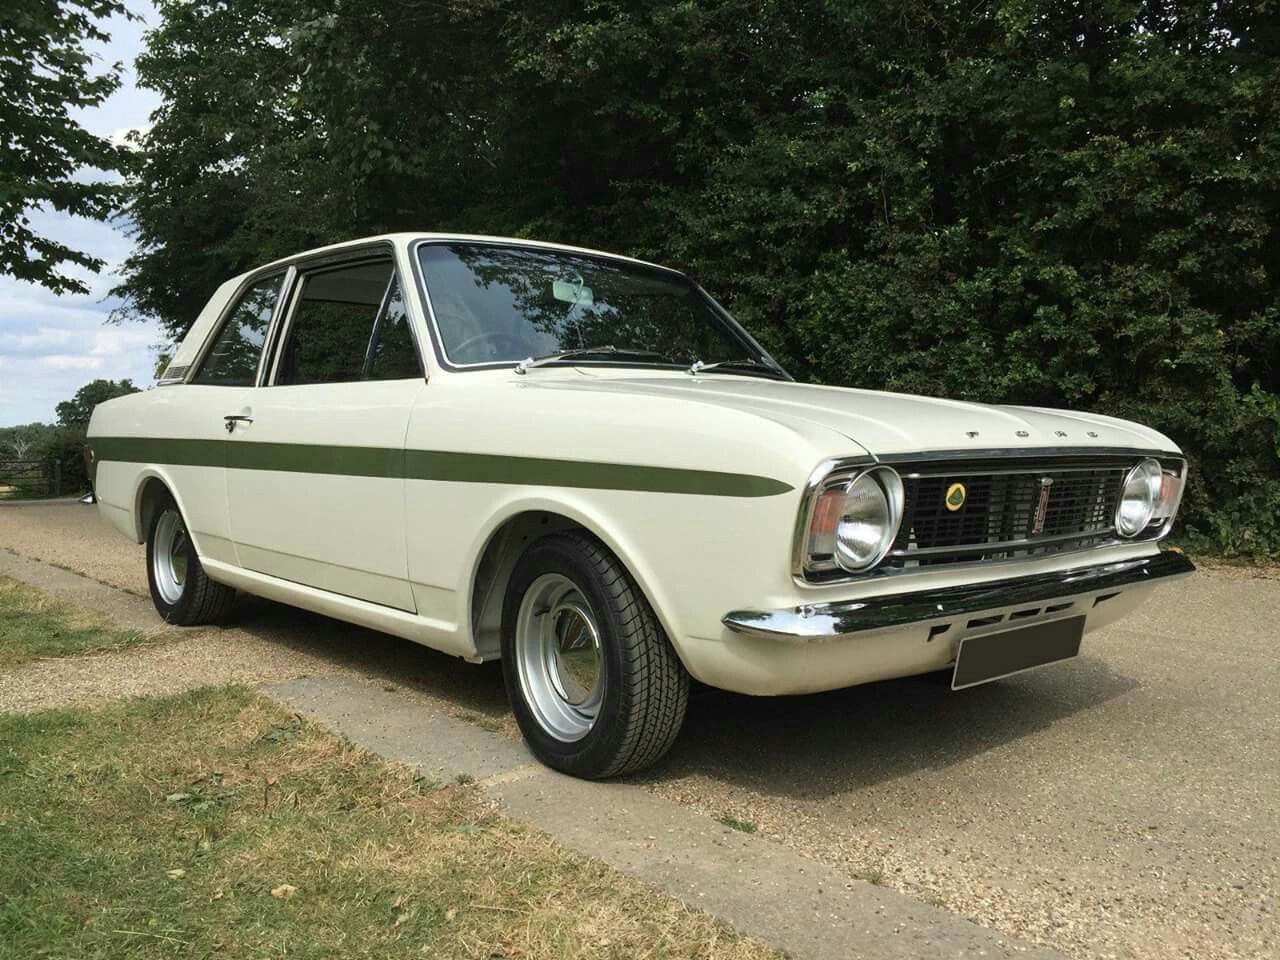 Audi 5000 audi 200 pinterest rap songs and cars fandeluxe Image collections